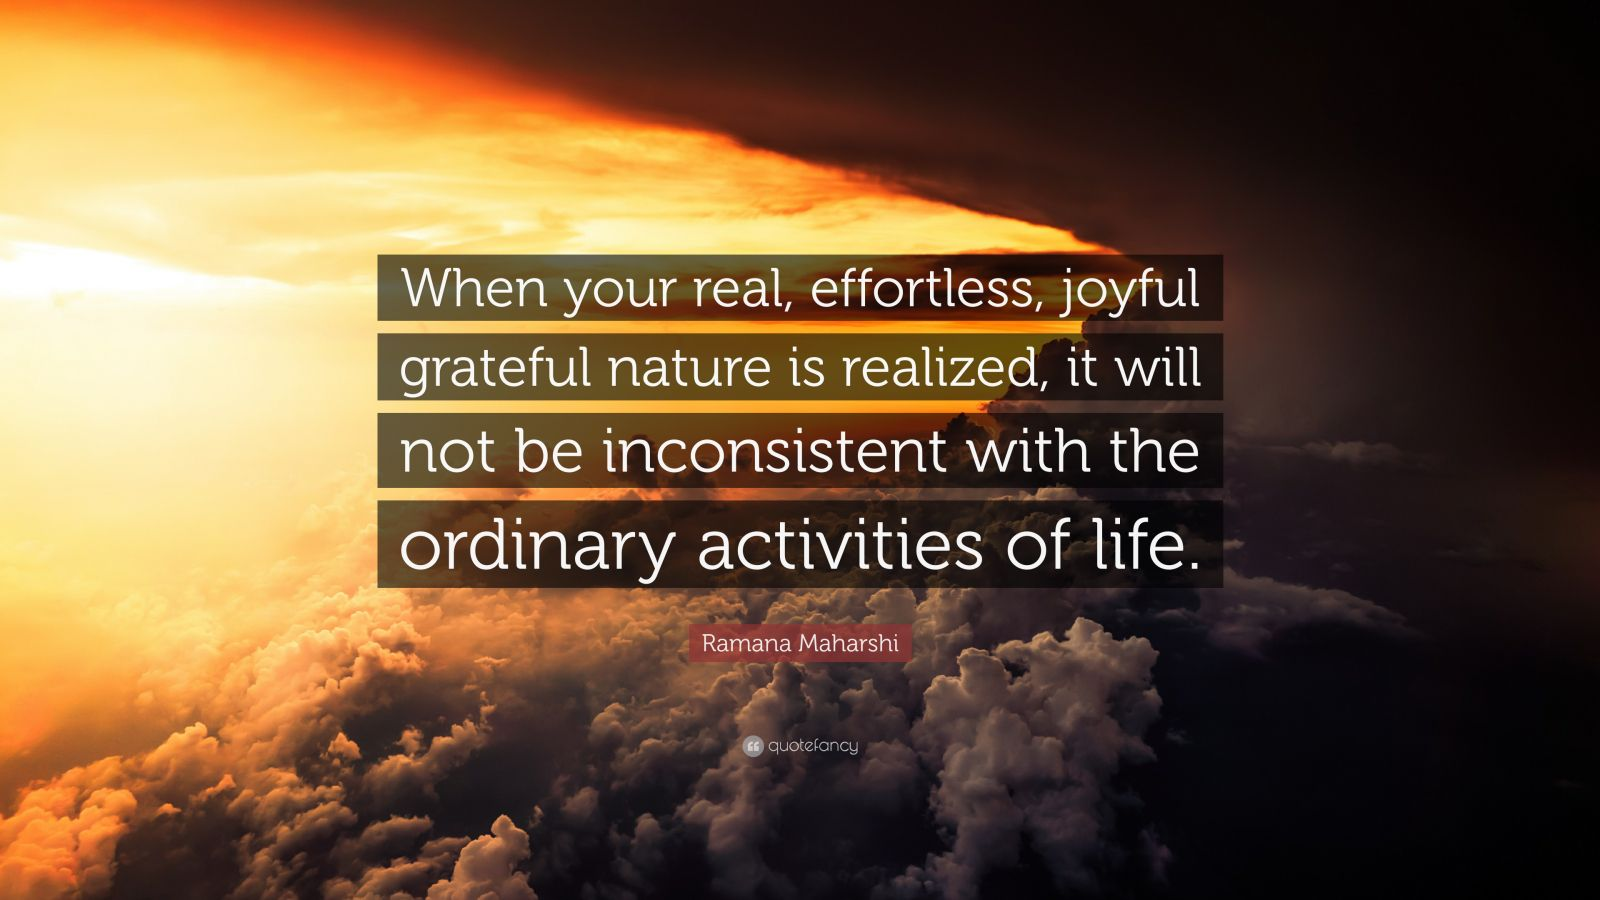 """Ramana Maharshi Quote: """"When your real, effortless, joyful grateful nature is realized, it will not be inconsistent with the ordinary activities of life."""""""